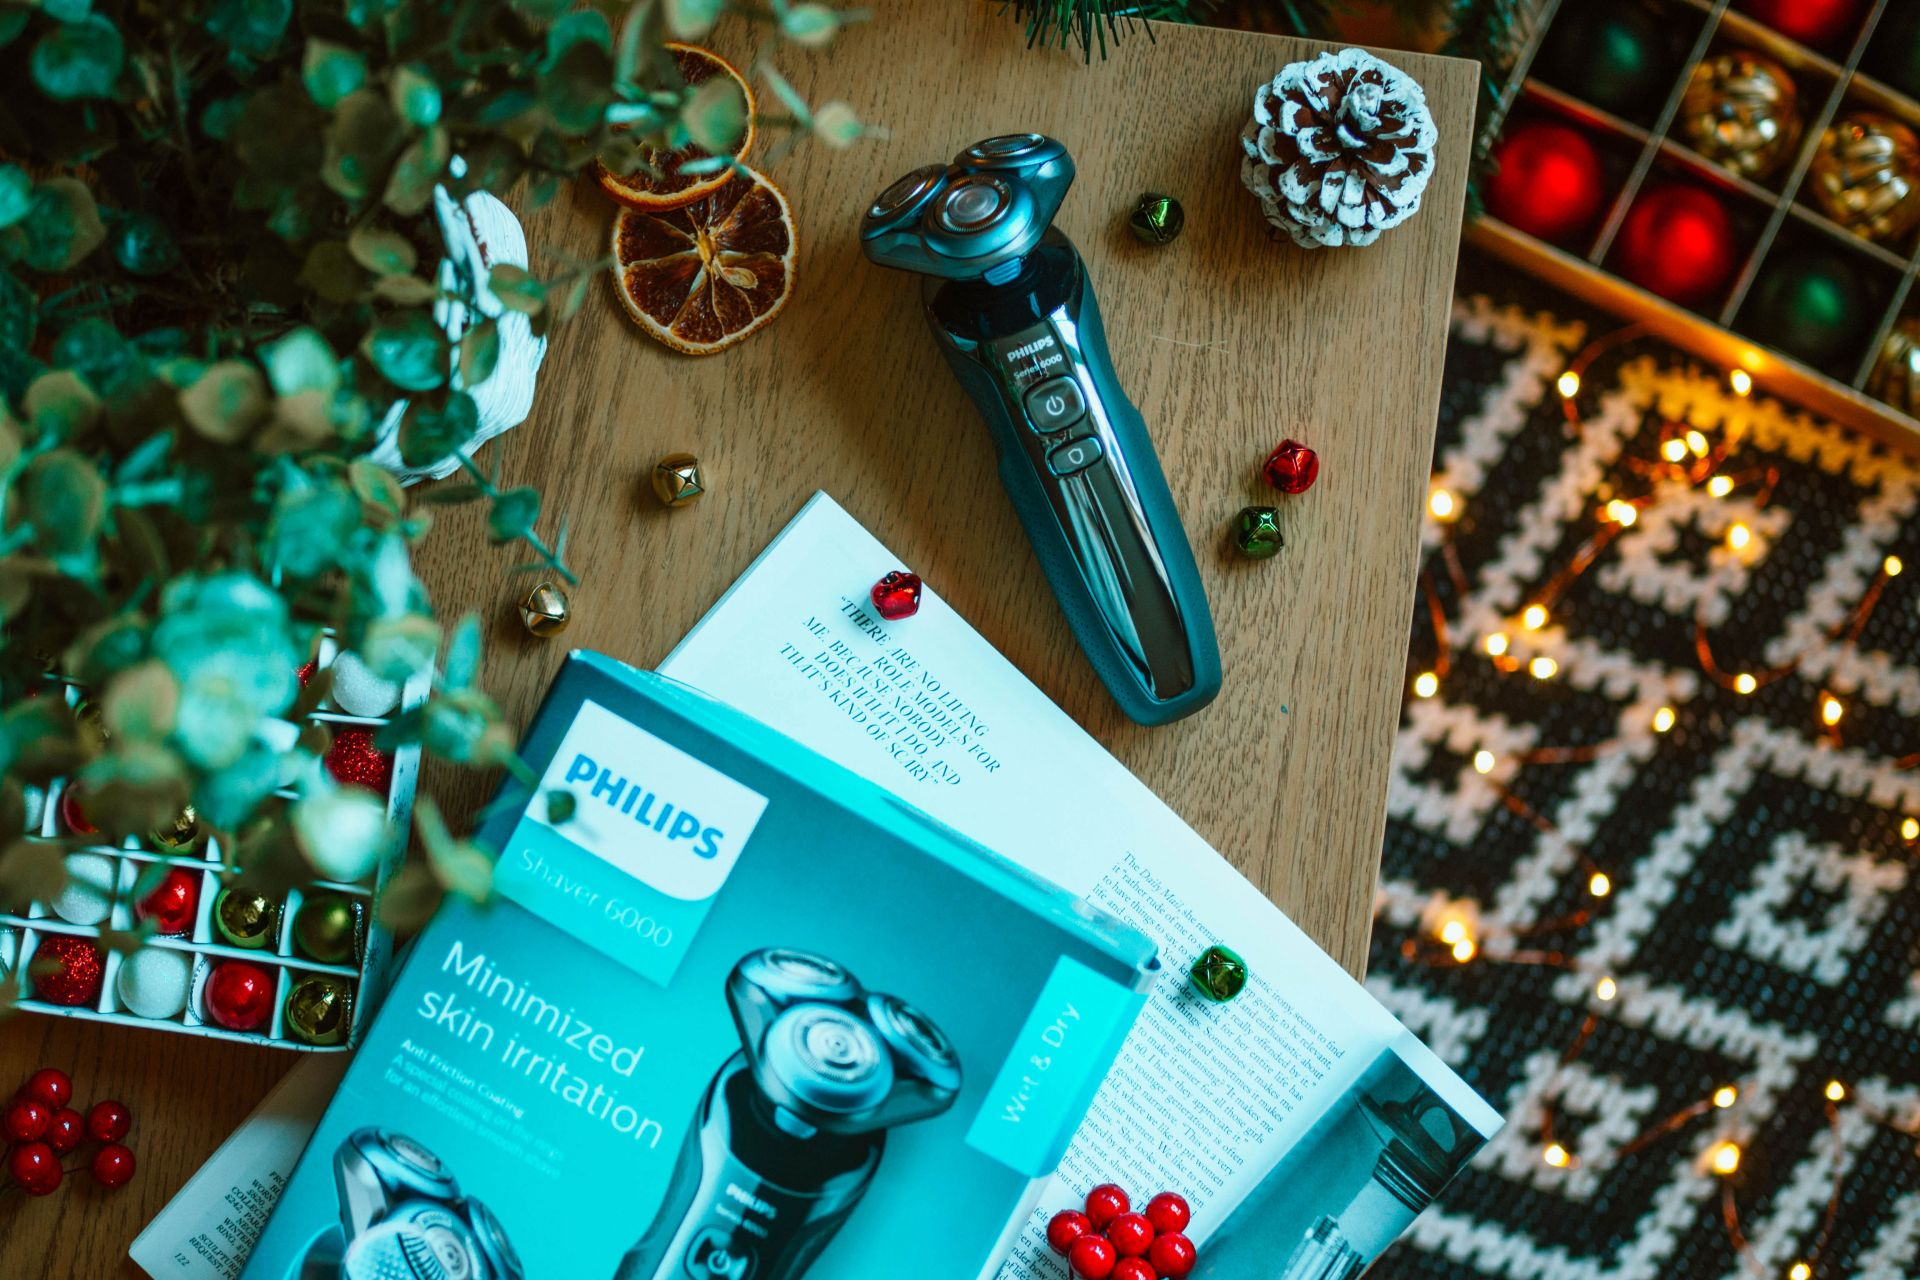 Christmas Electric Gifts For Him - Philips Series 6000 Shaver